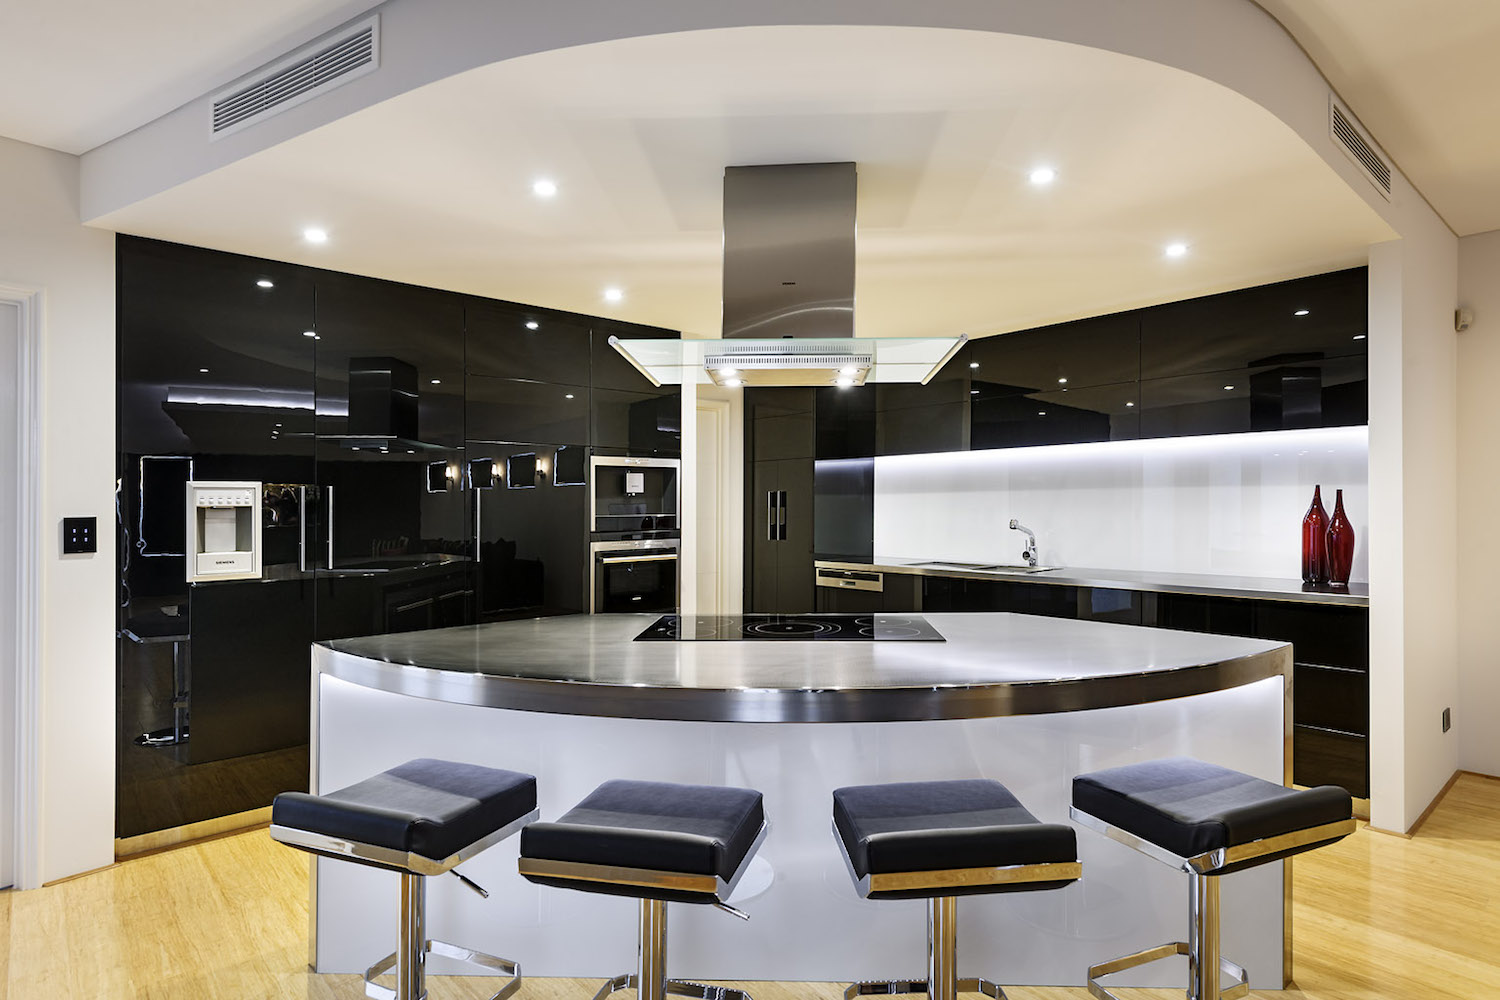 Residential Attitudes - Half circle kitchen with stainless steel kitchen top and stools